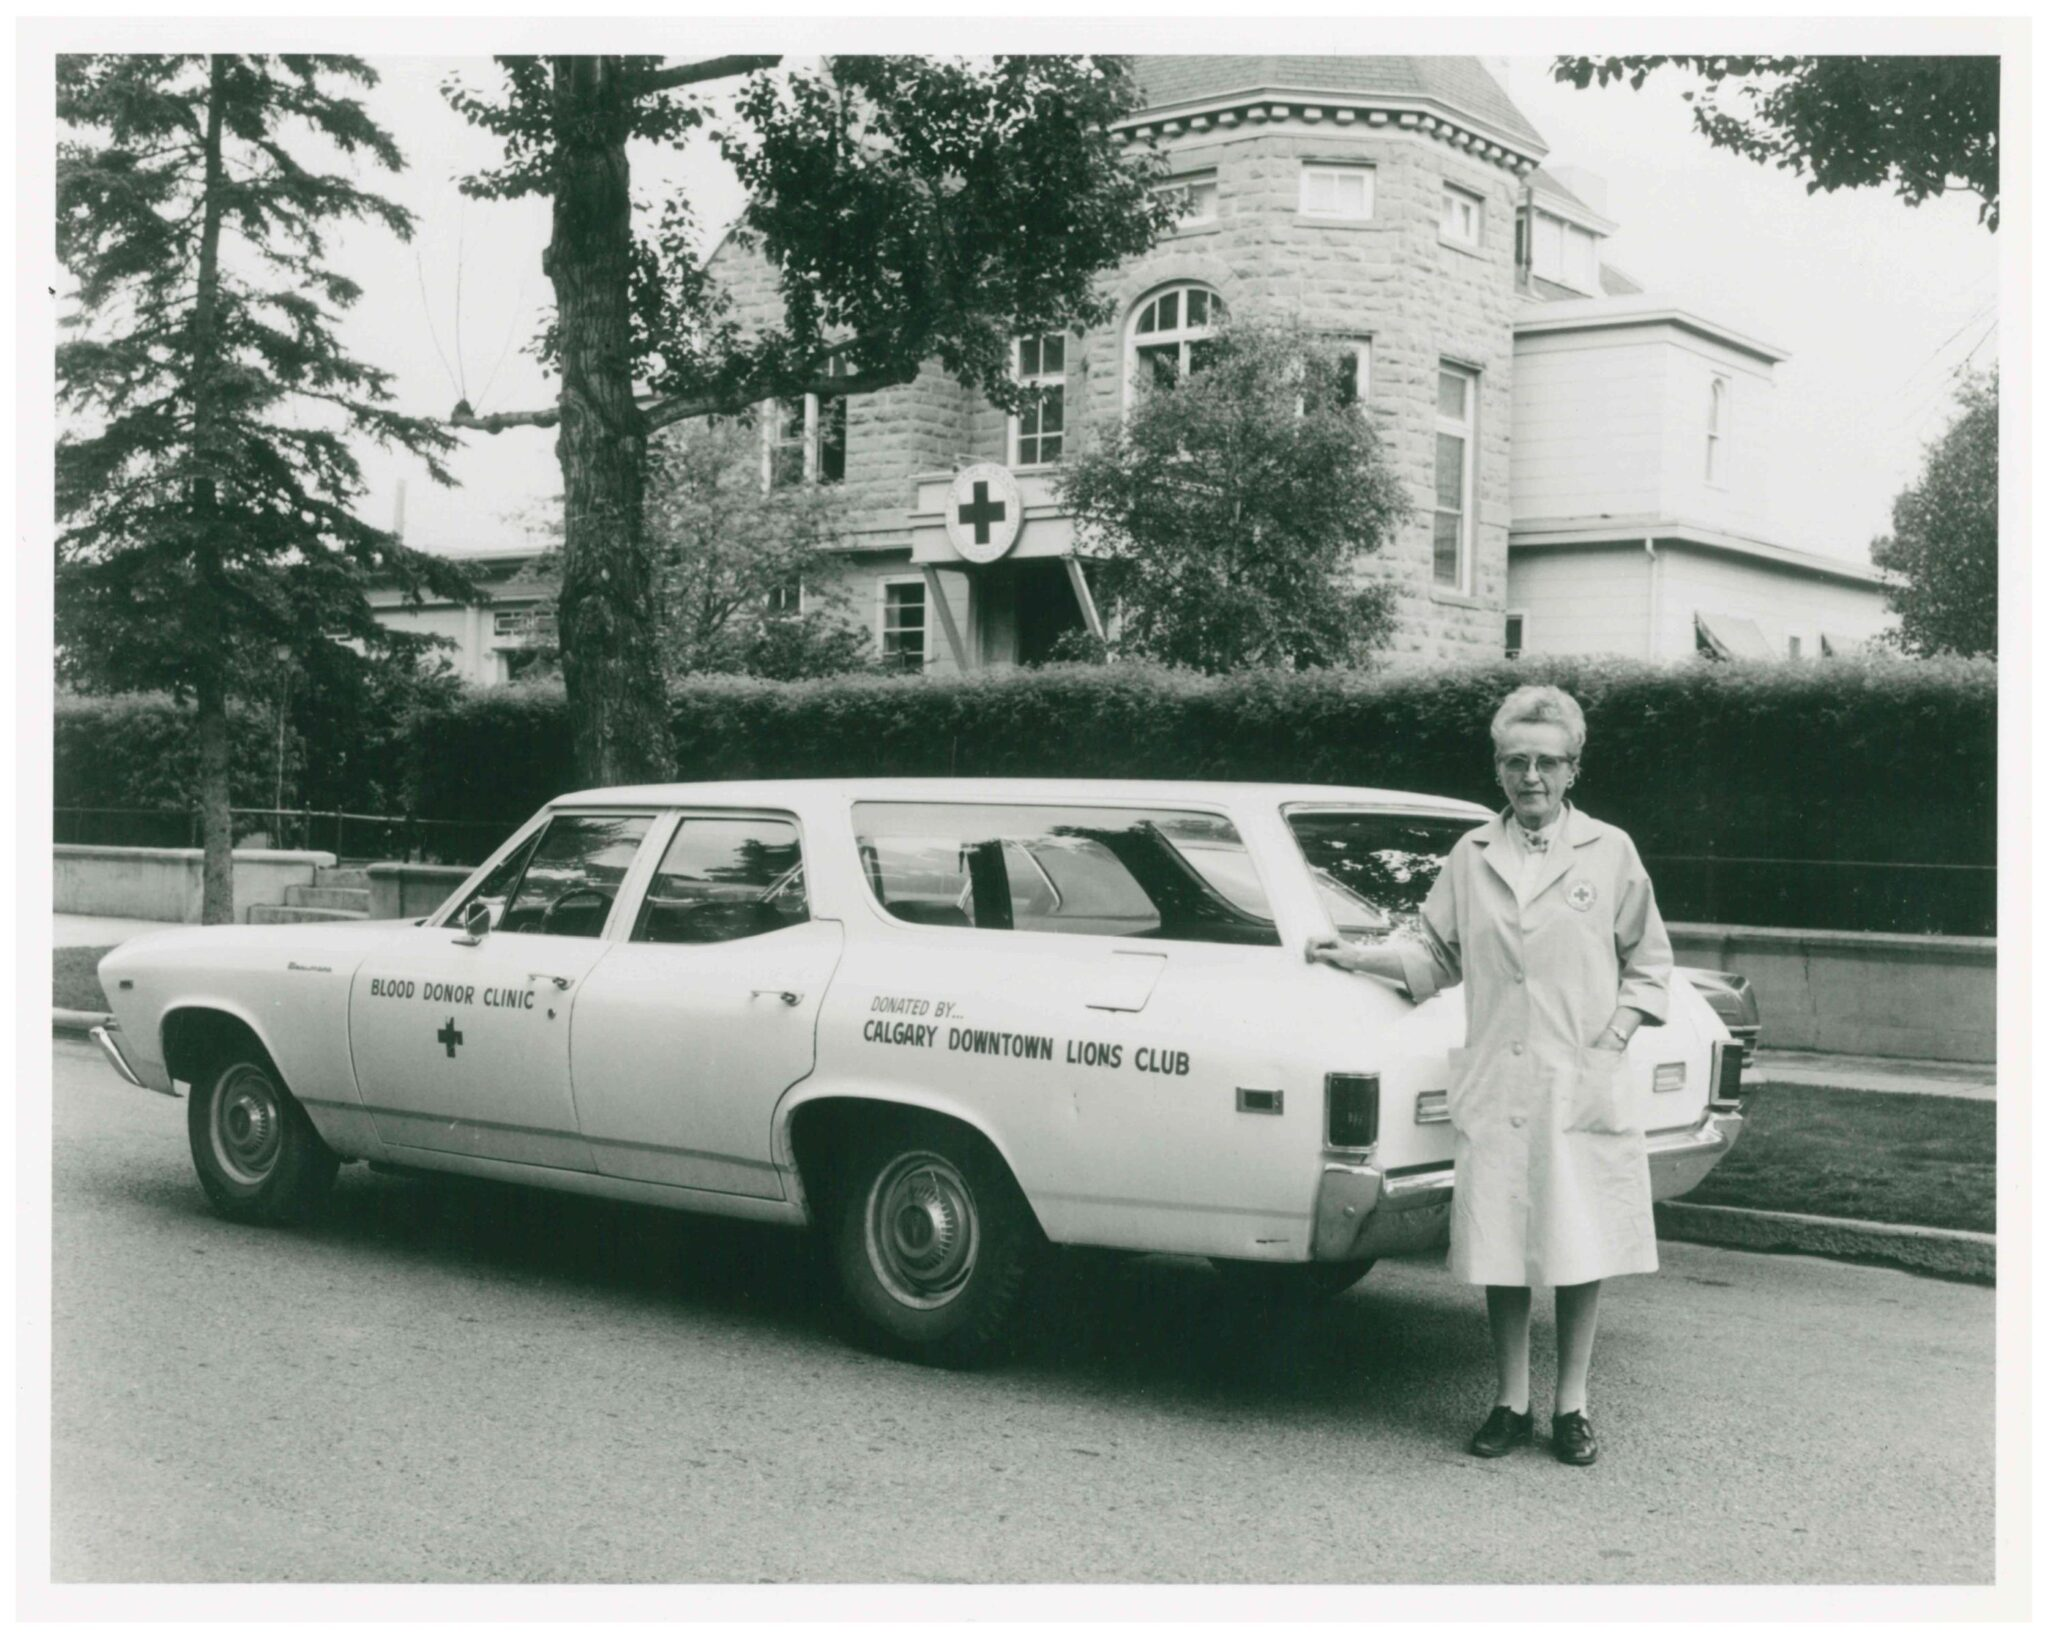 Black and white image of women in white medical coat standing beside white car in front of a sandstone building that houses the blood donor clinic.